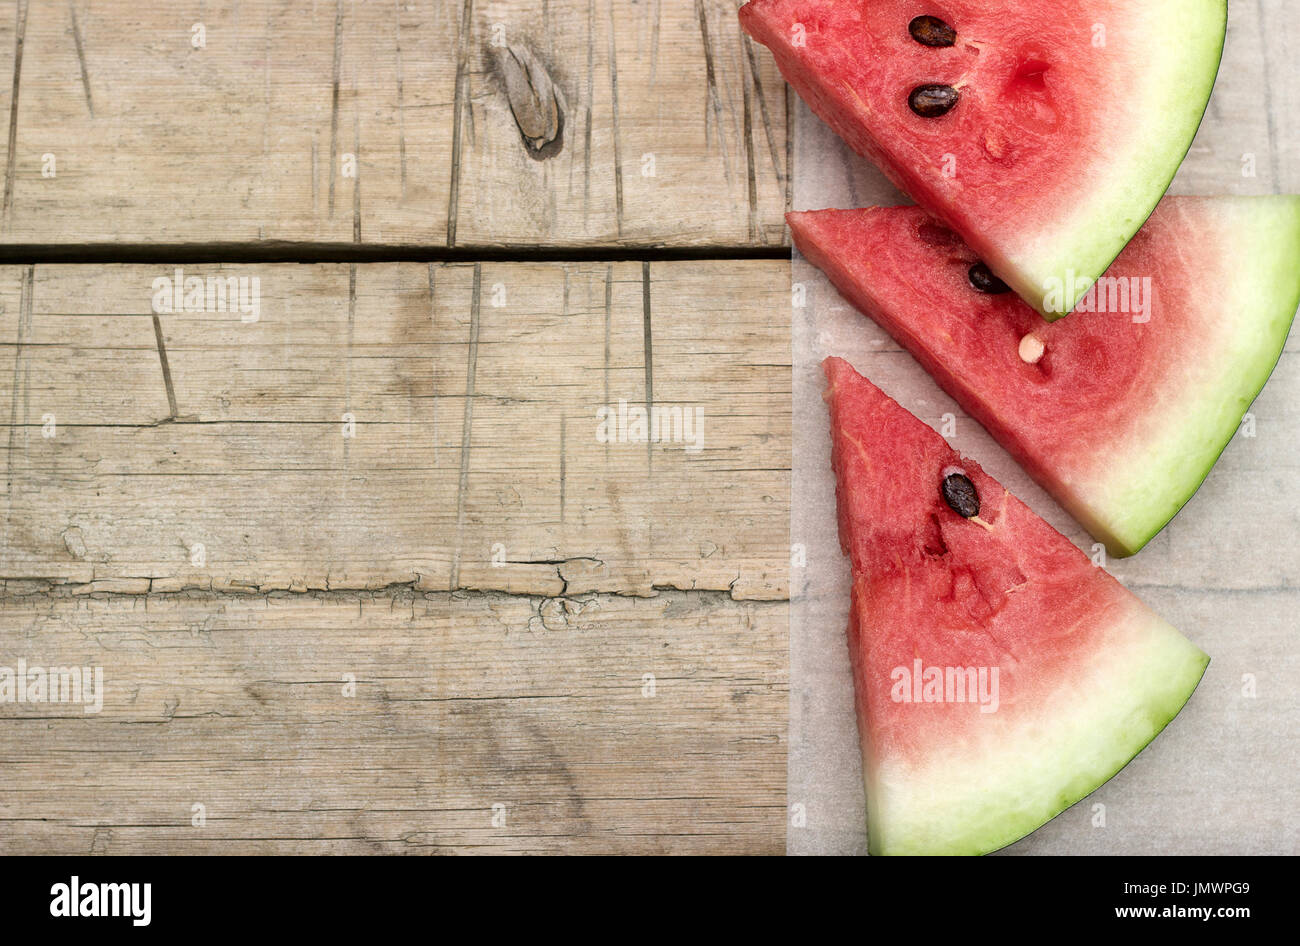 Watermelon slices on a wooden table - Stock Image